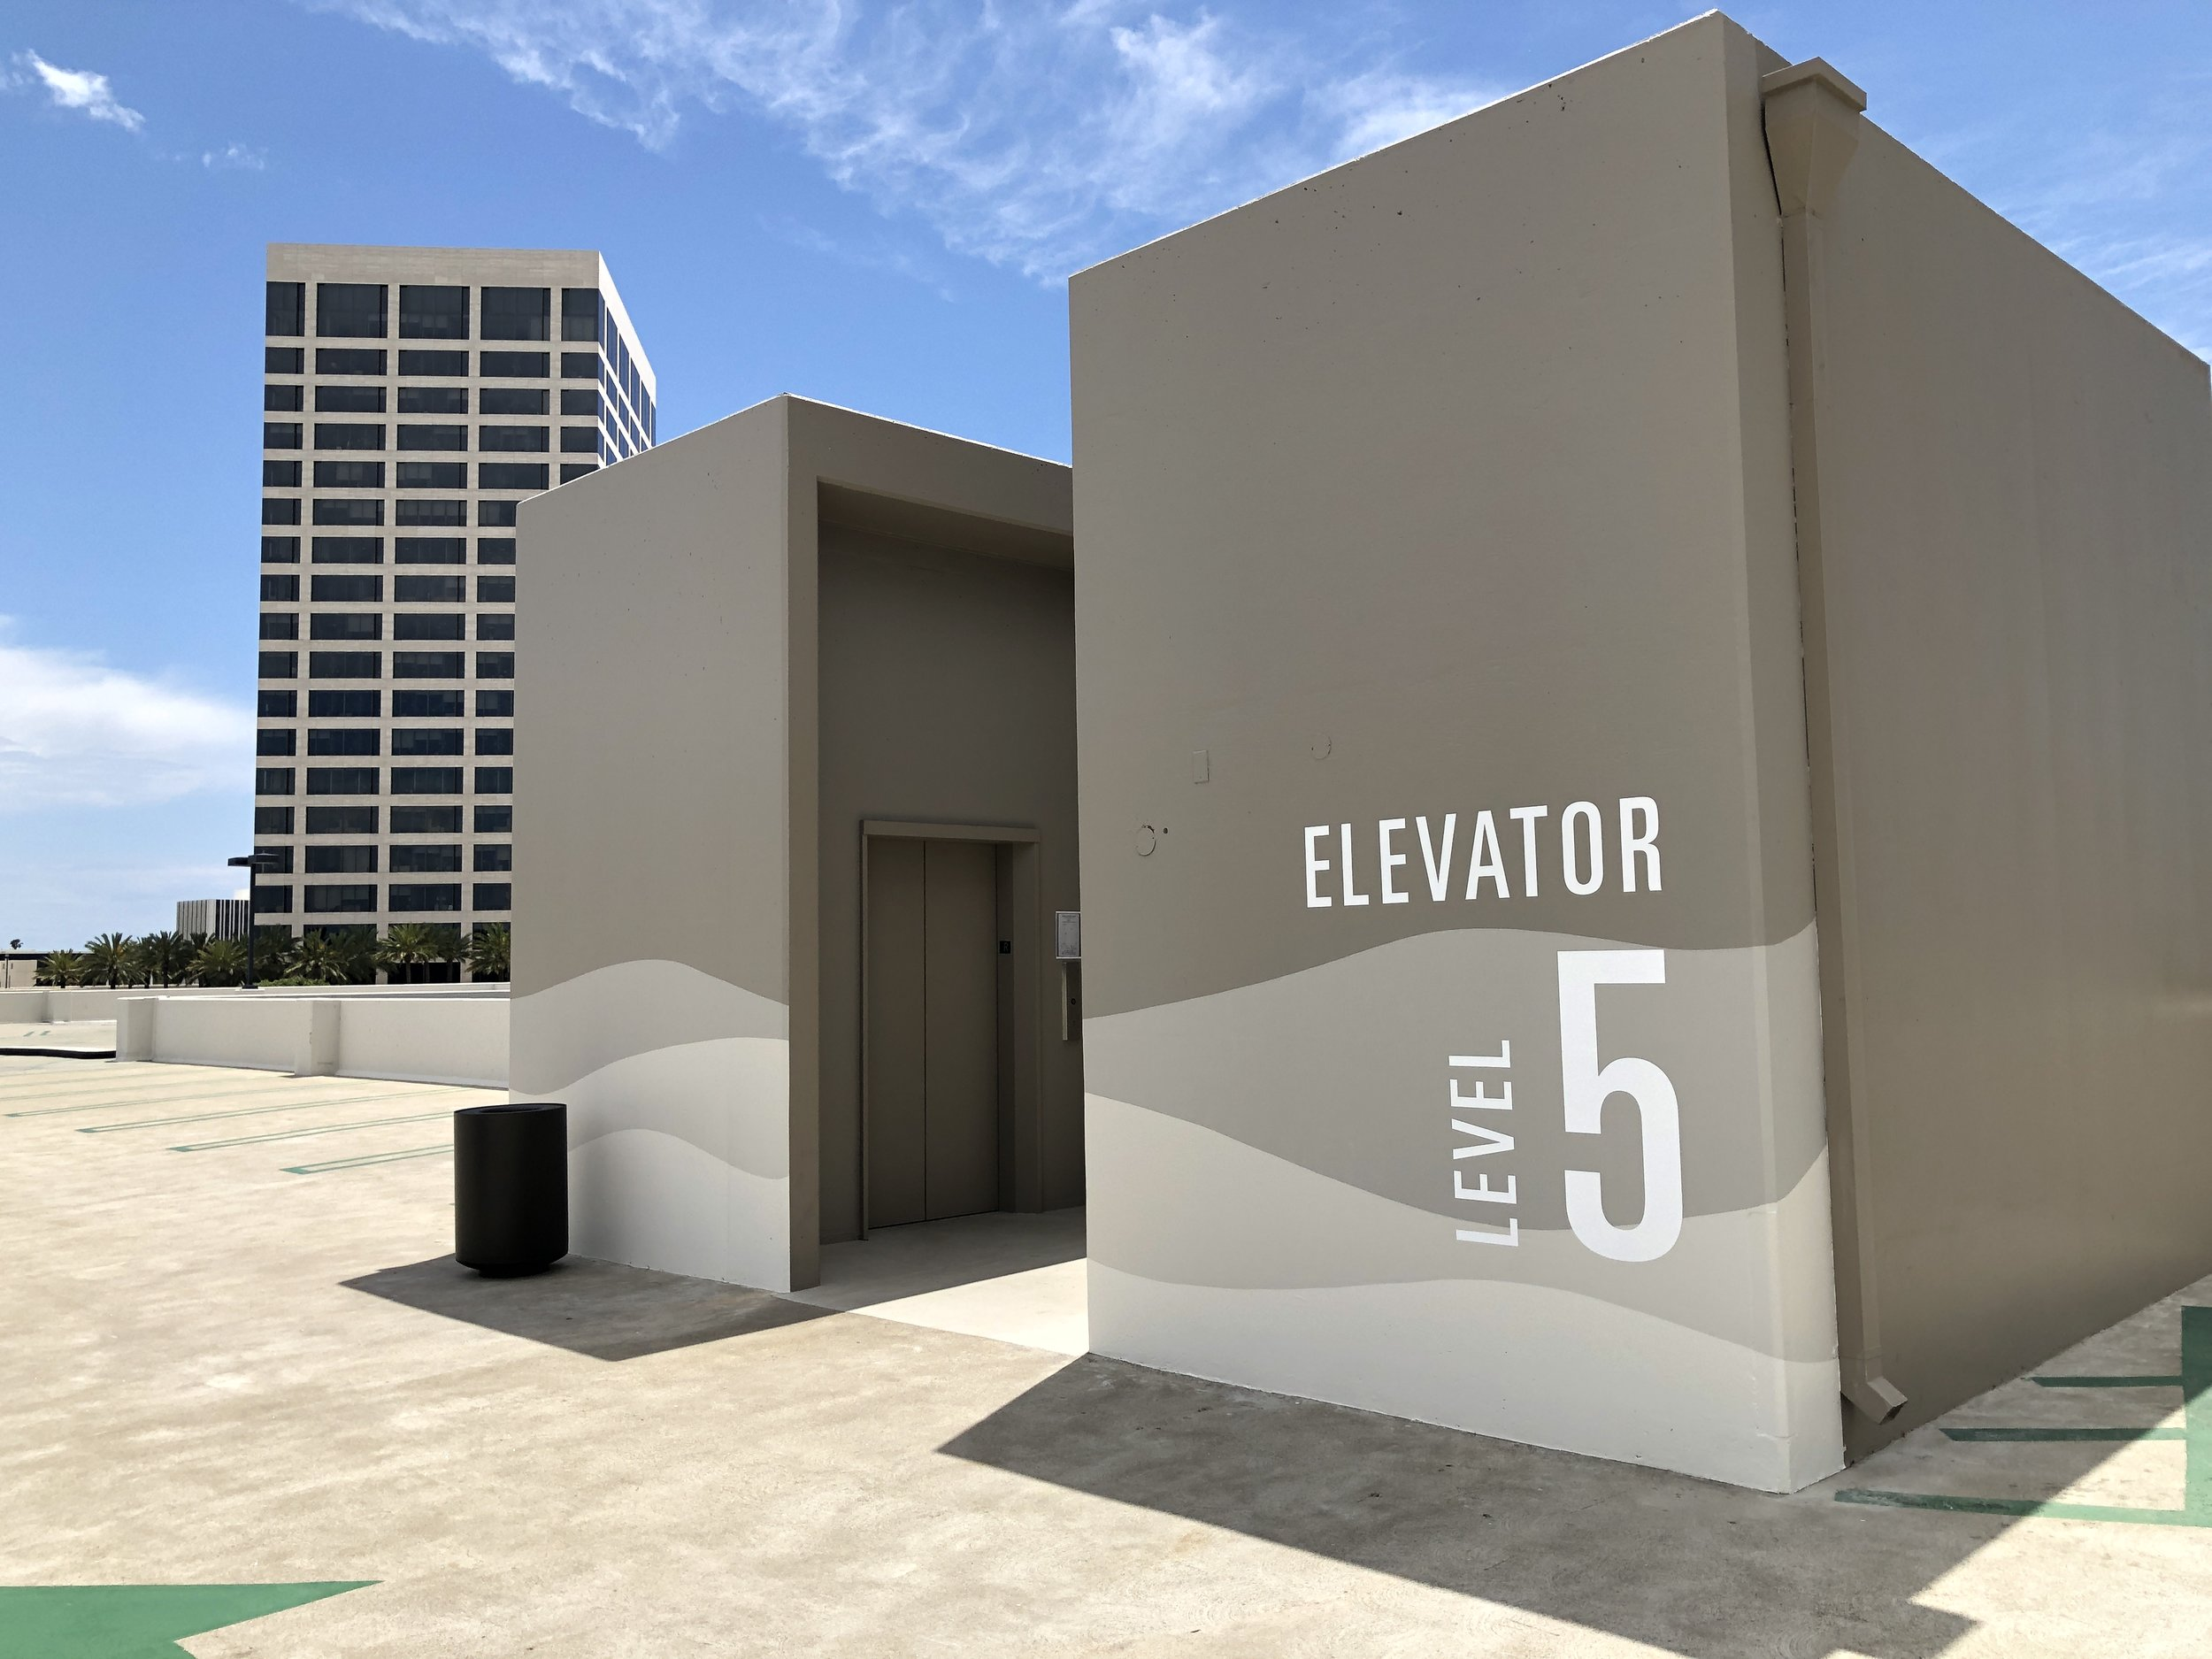 Hand painted way finding graphics parking structure Newport Beach Orange County